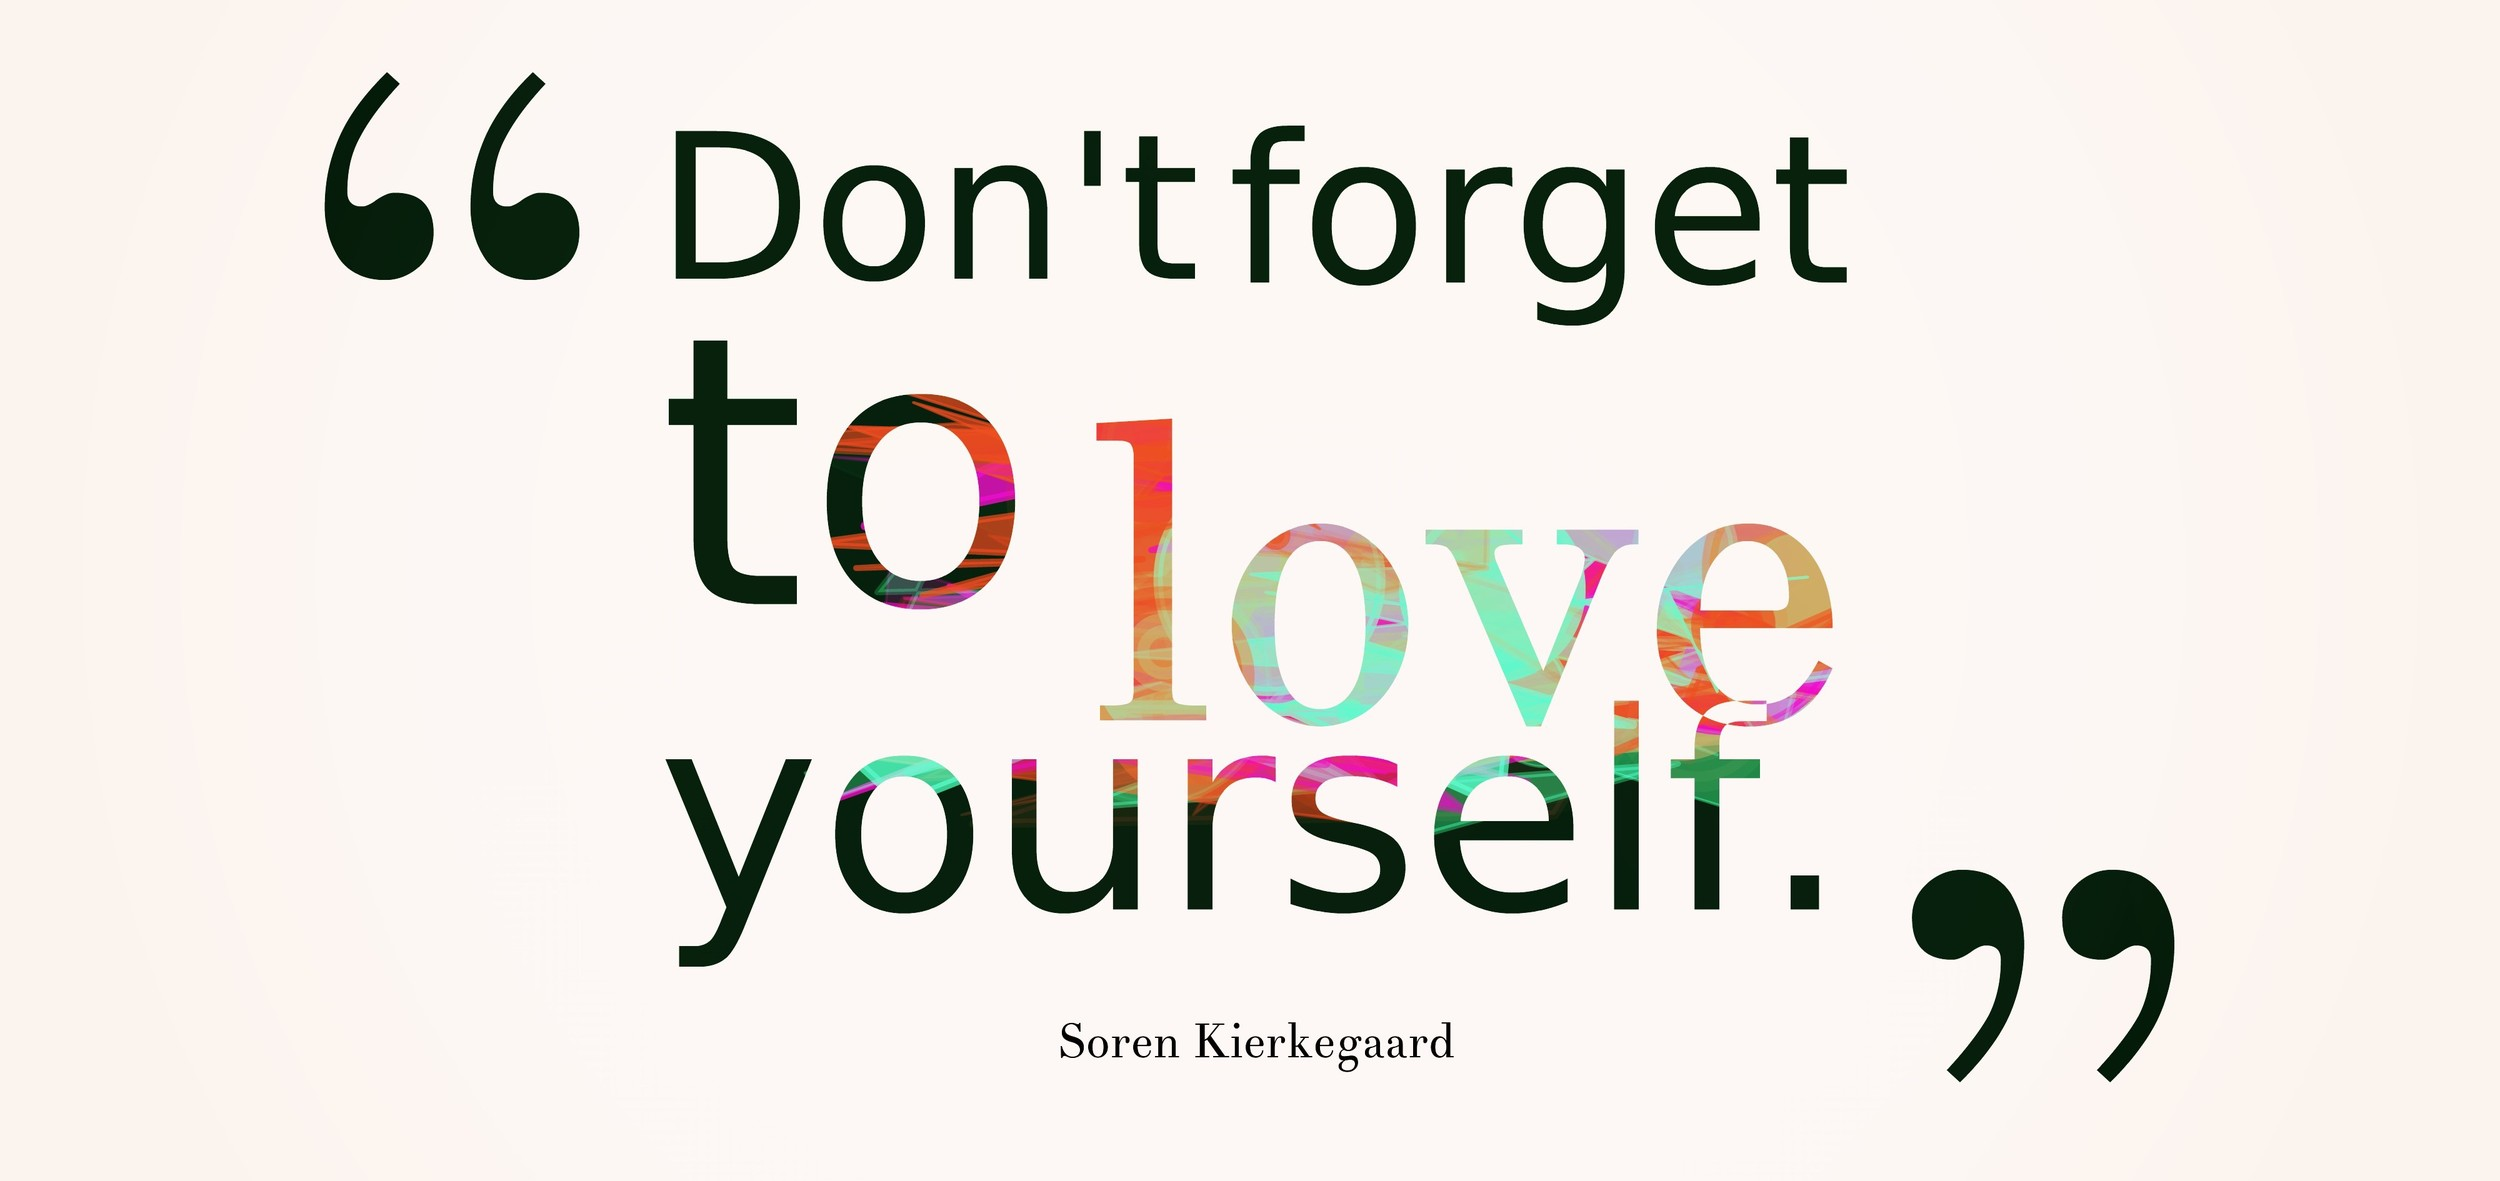 loveyourselftoo